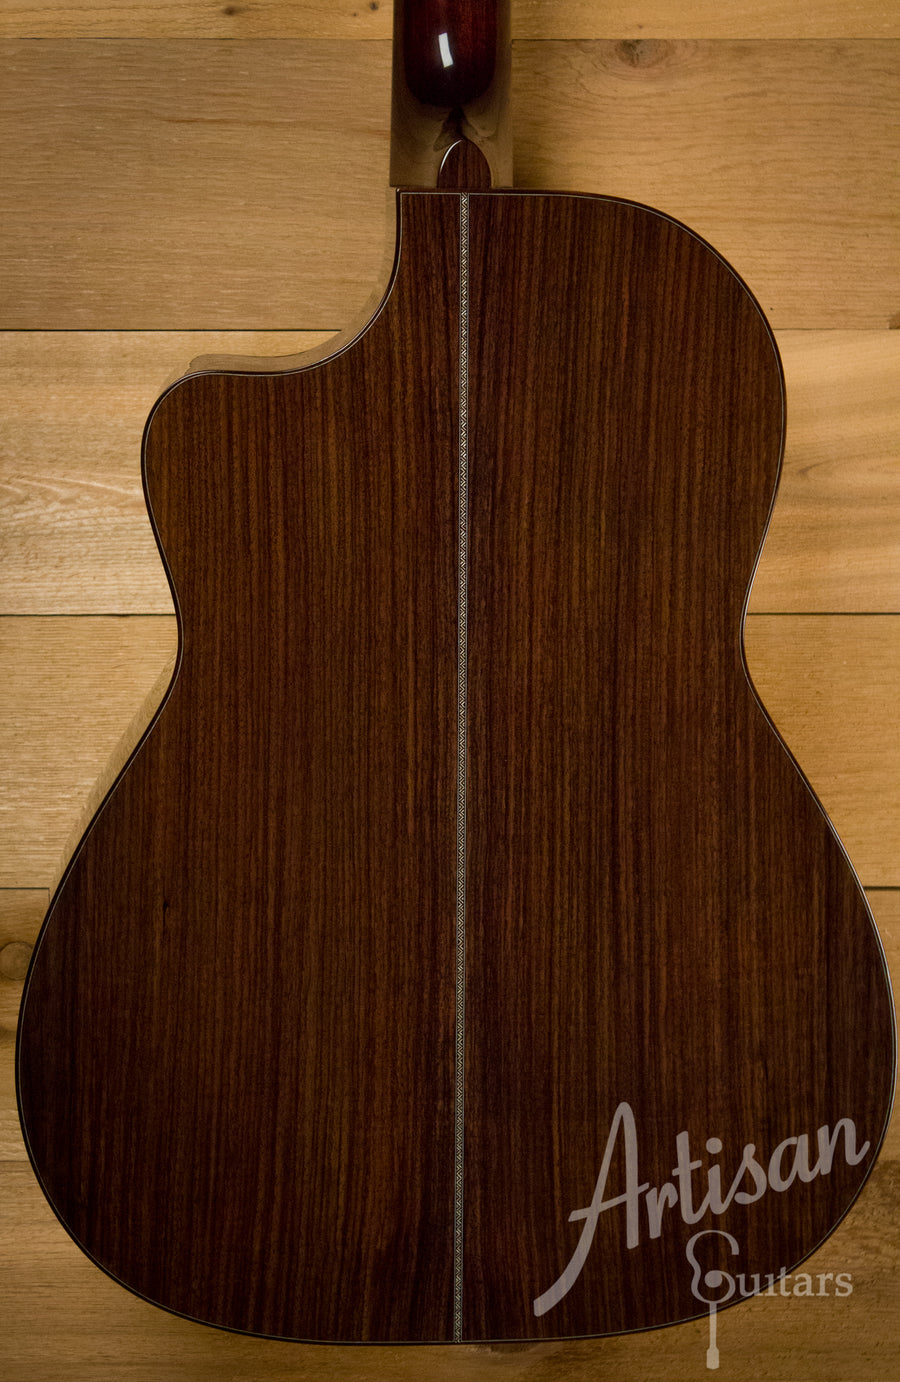 Huss and Dalton CM Guitar with Sinker Redwood and Indian Rosewood ID-10379 - Artisan Guitars